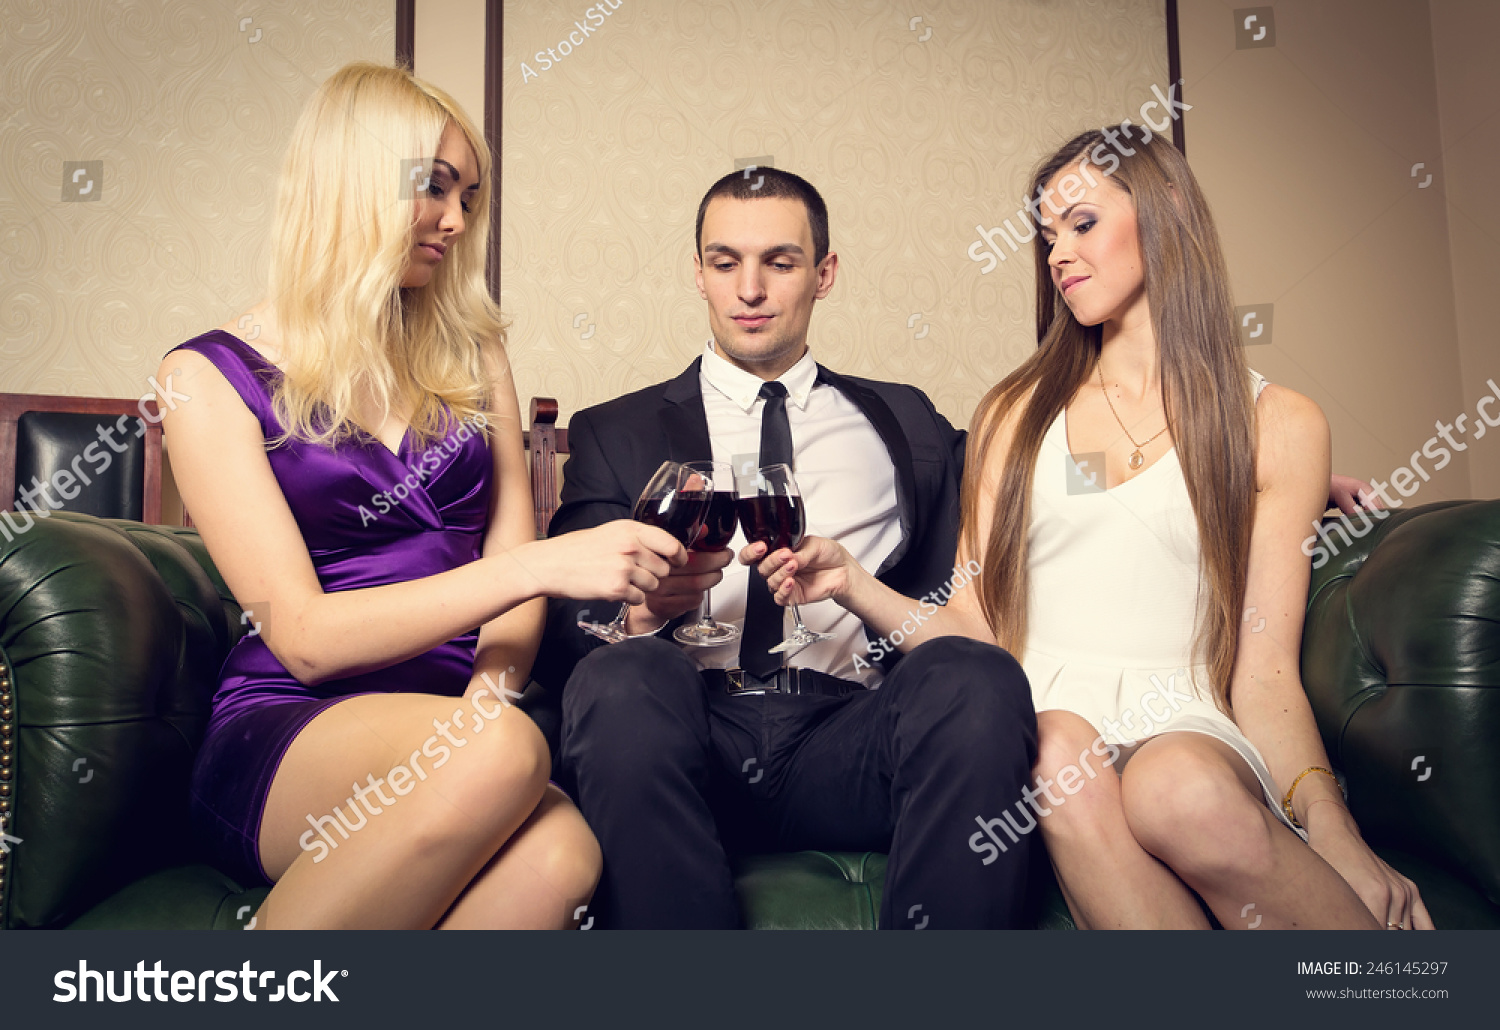 Man In Bed With Two Women royalty free stock photo WMAR